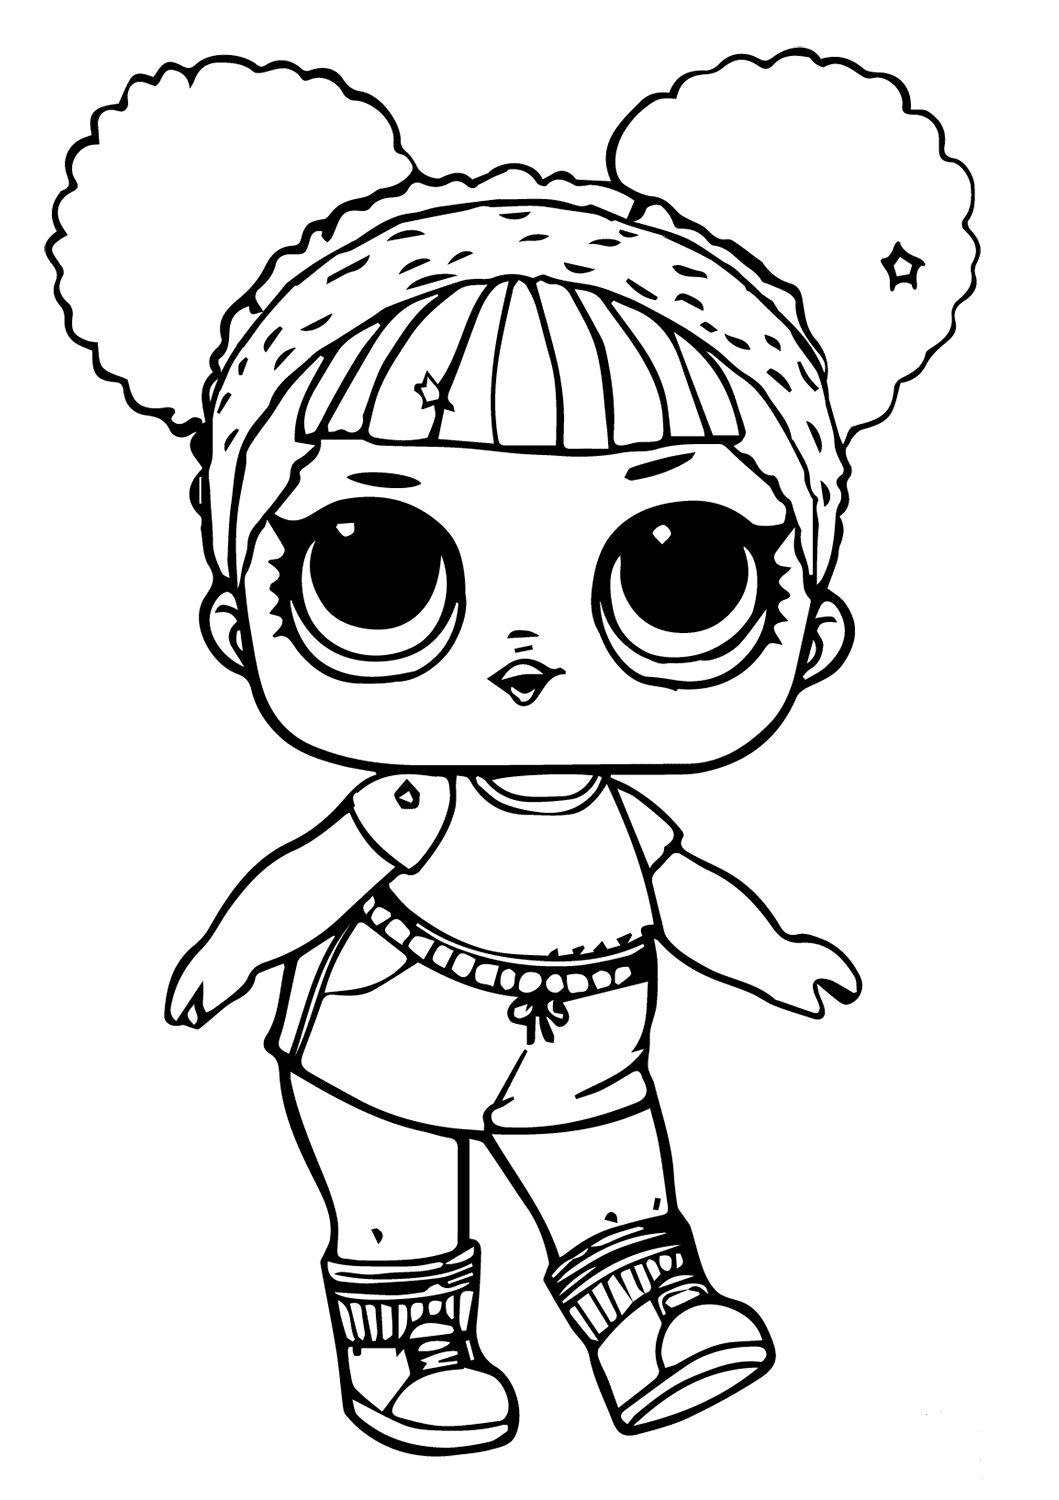 coloring template printable lol colouring pages lol surprise doll coloring pages series 1 baby cat free lol printable coloring template pages colouring